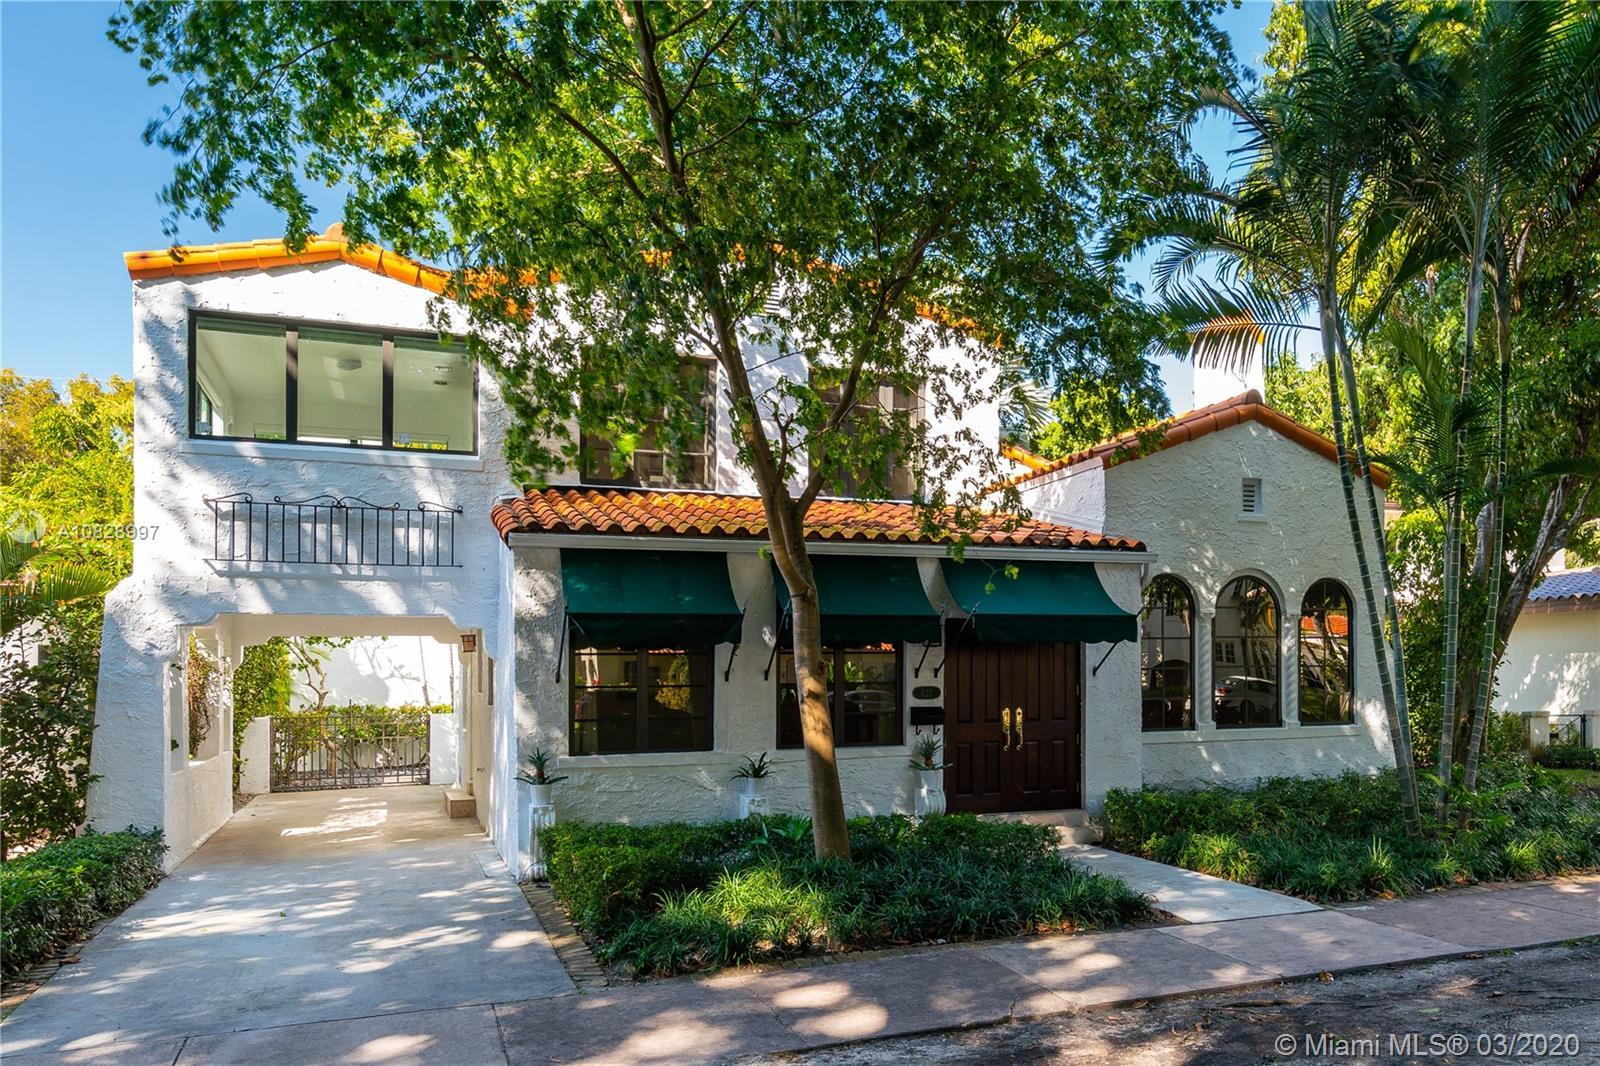 2 beautiful homes for the price of one! This turn-key, charming 1920's spacious Old Spanish 3/2 main